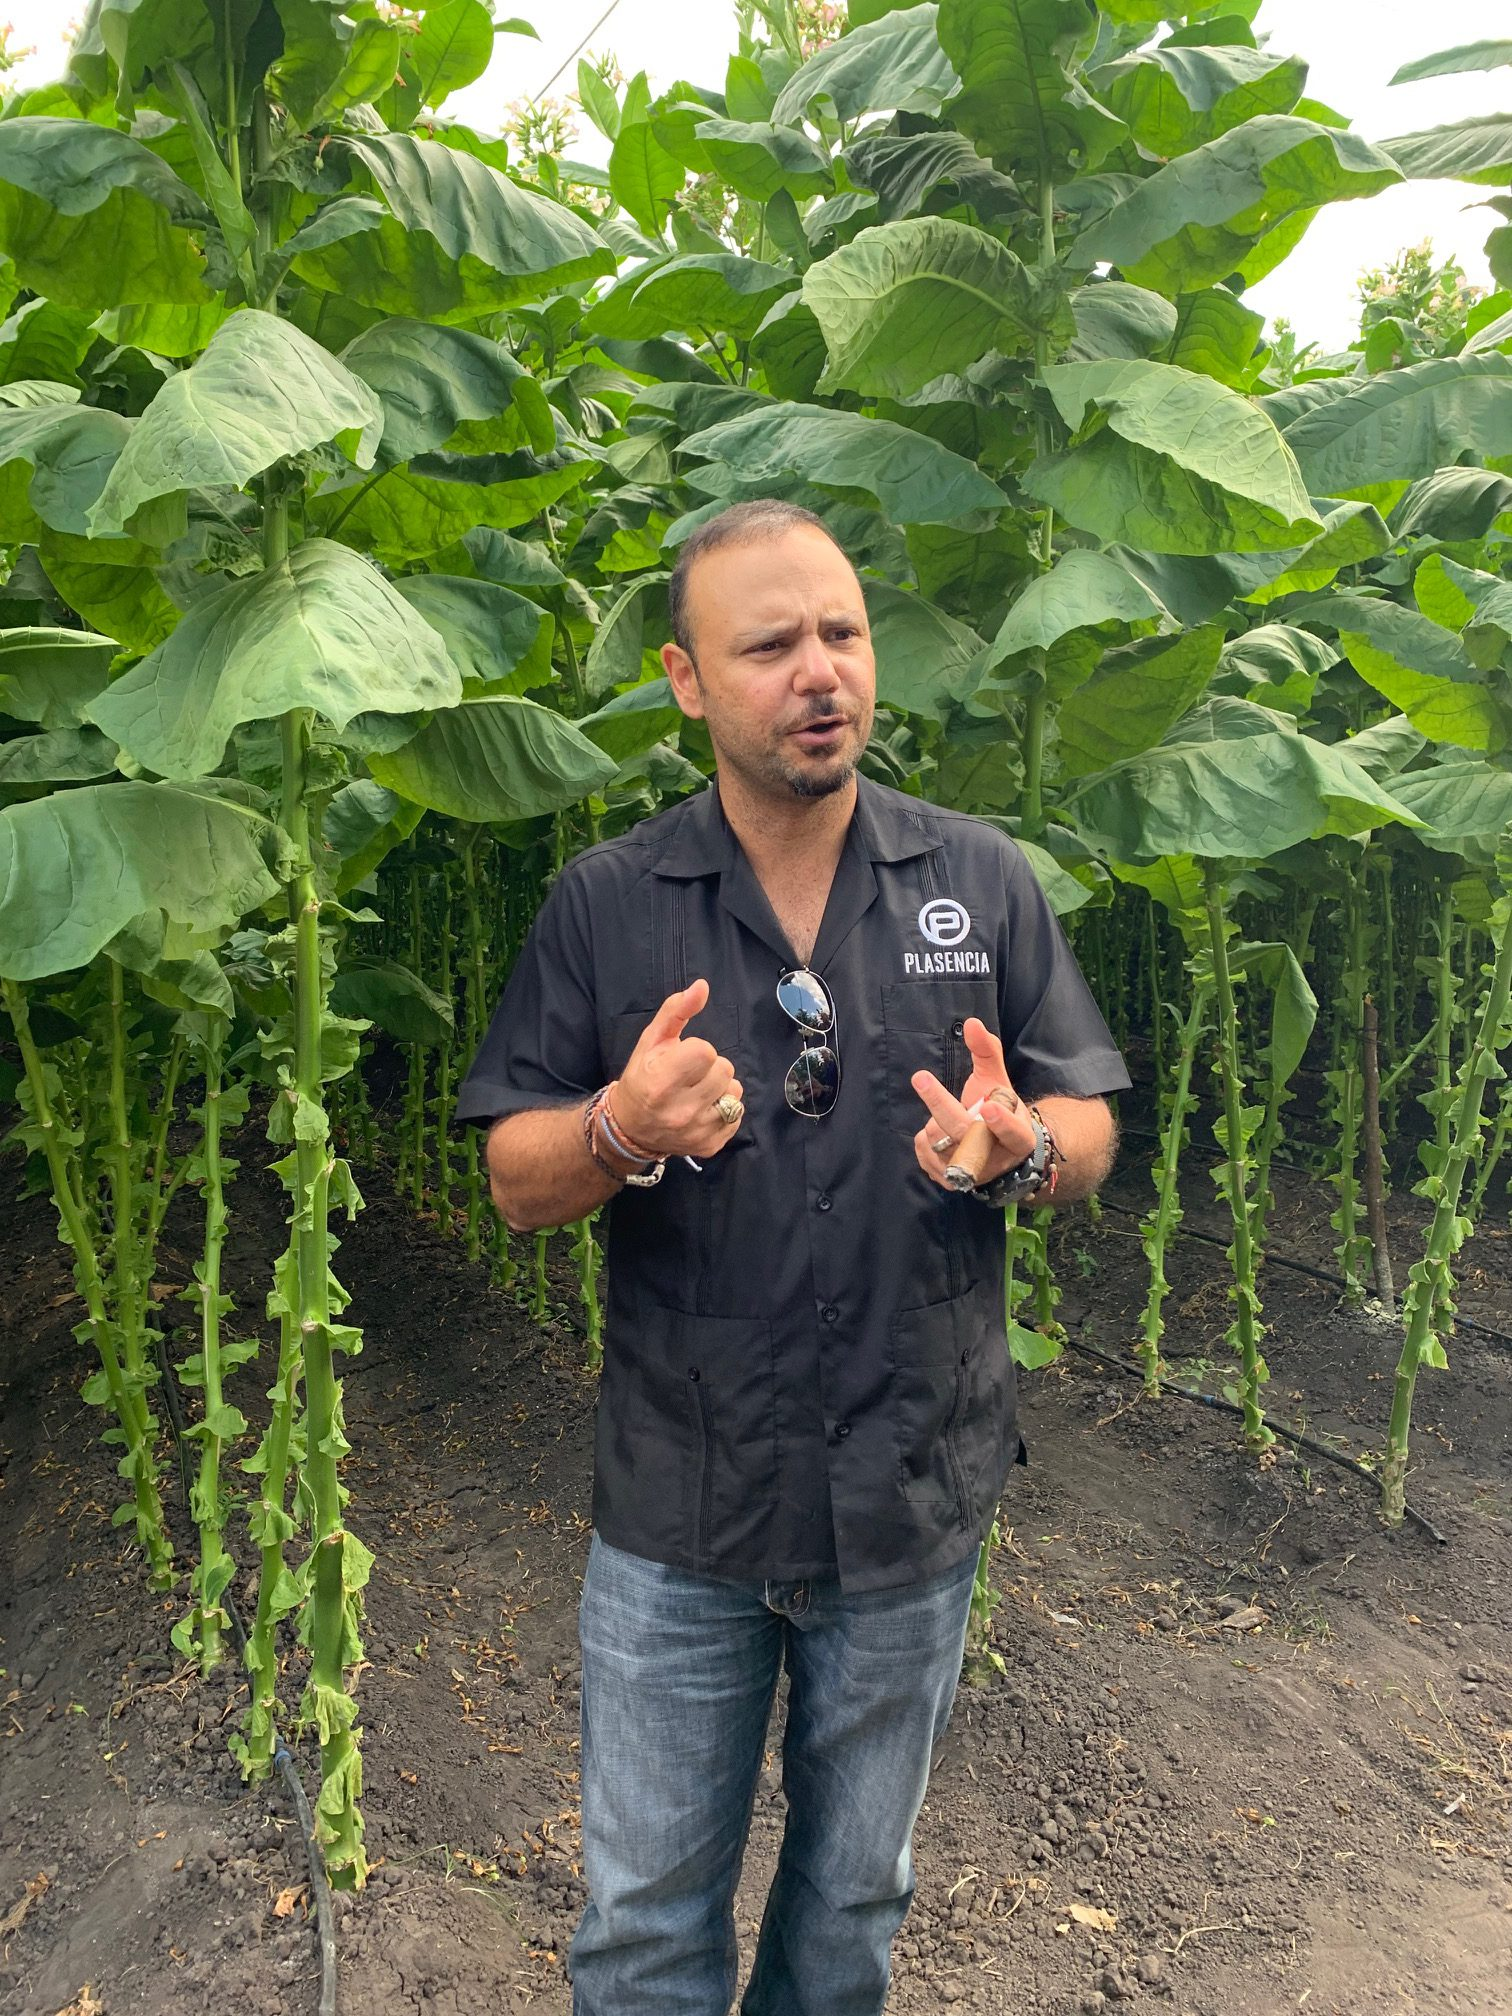 master blenders podcast interview nestor plasencia jr tobacco field image